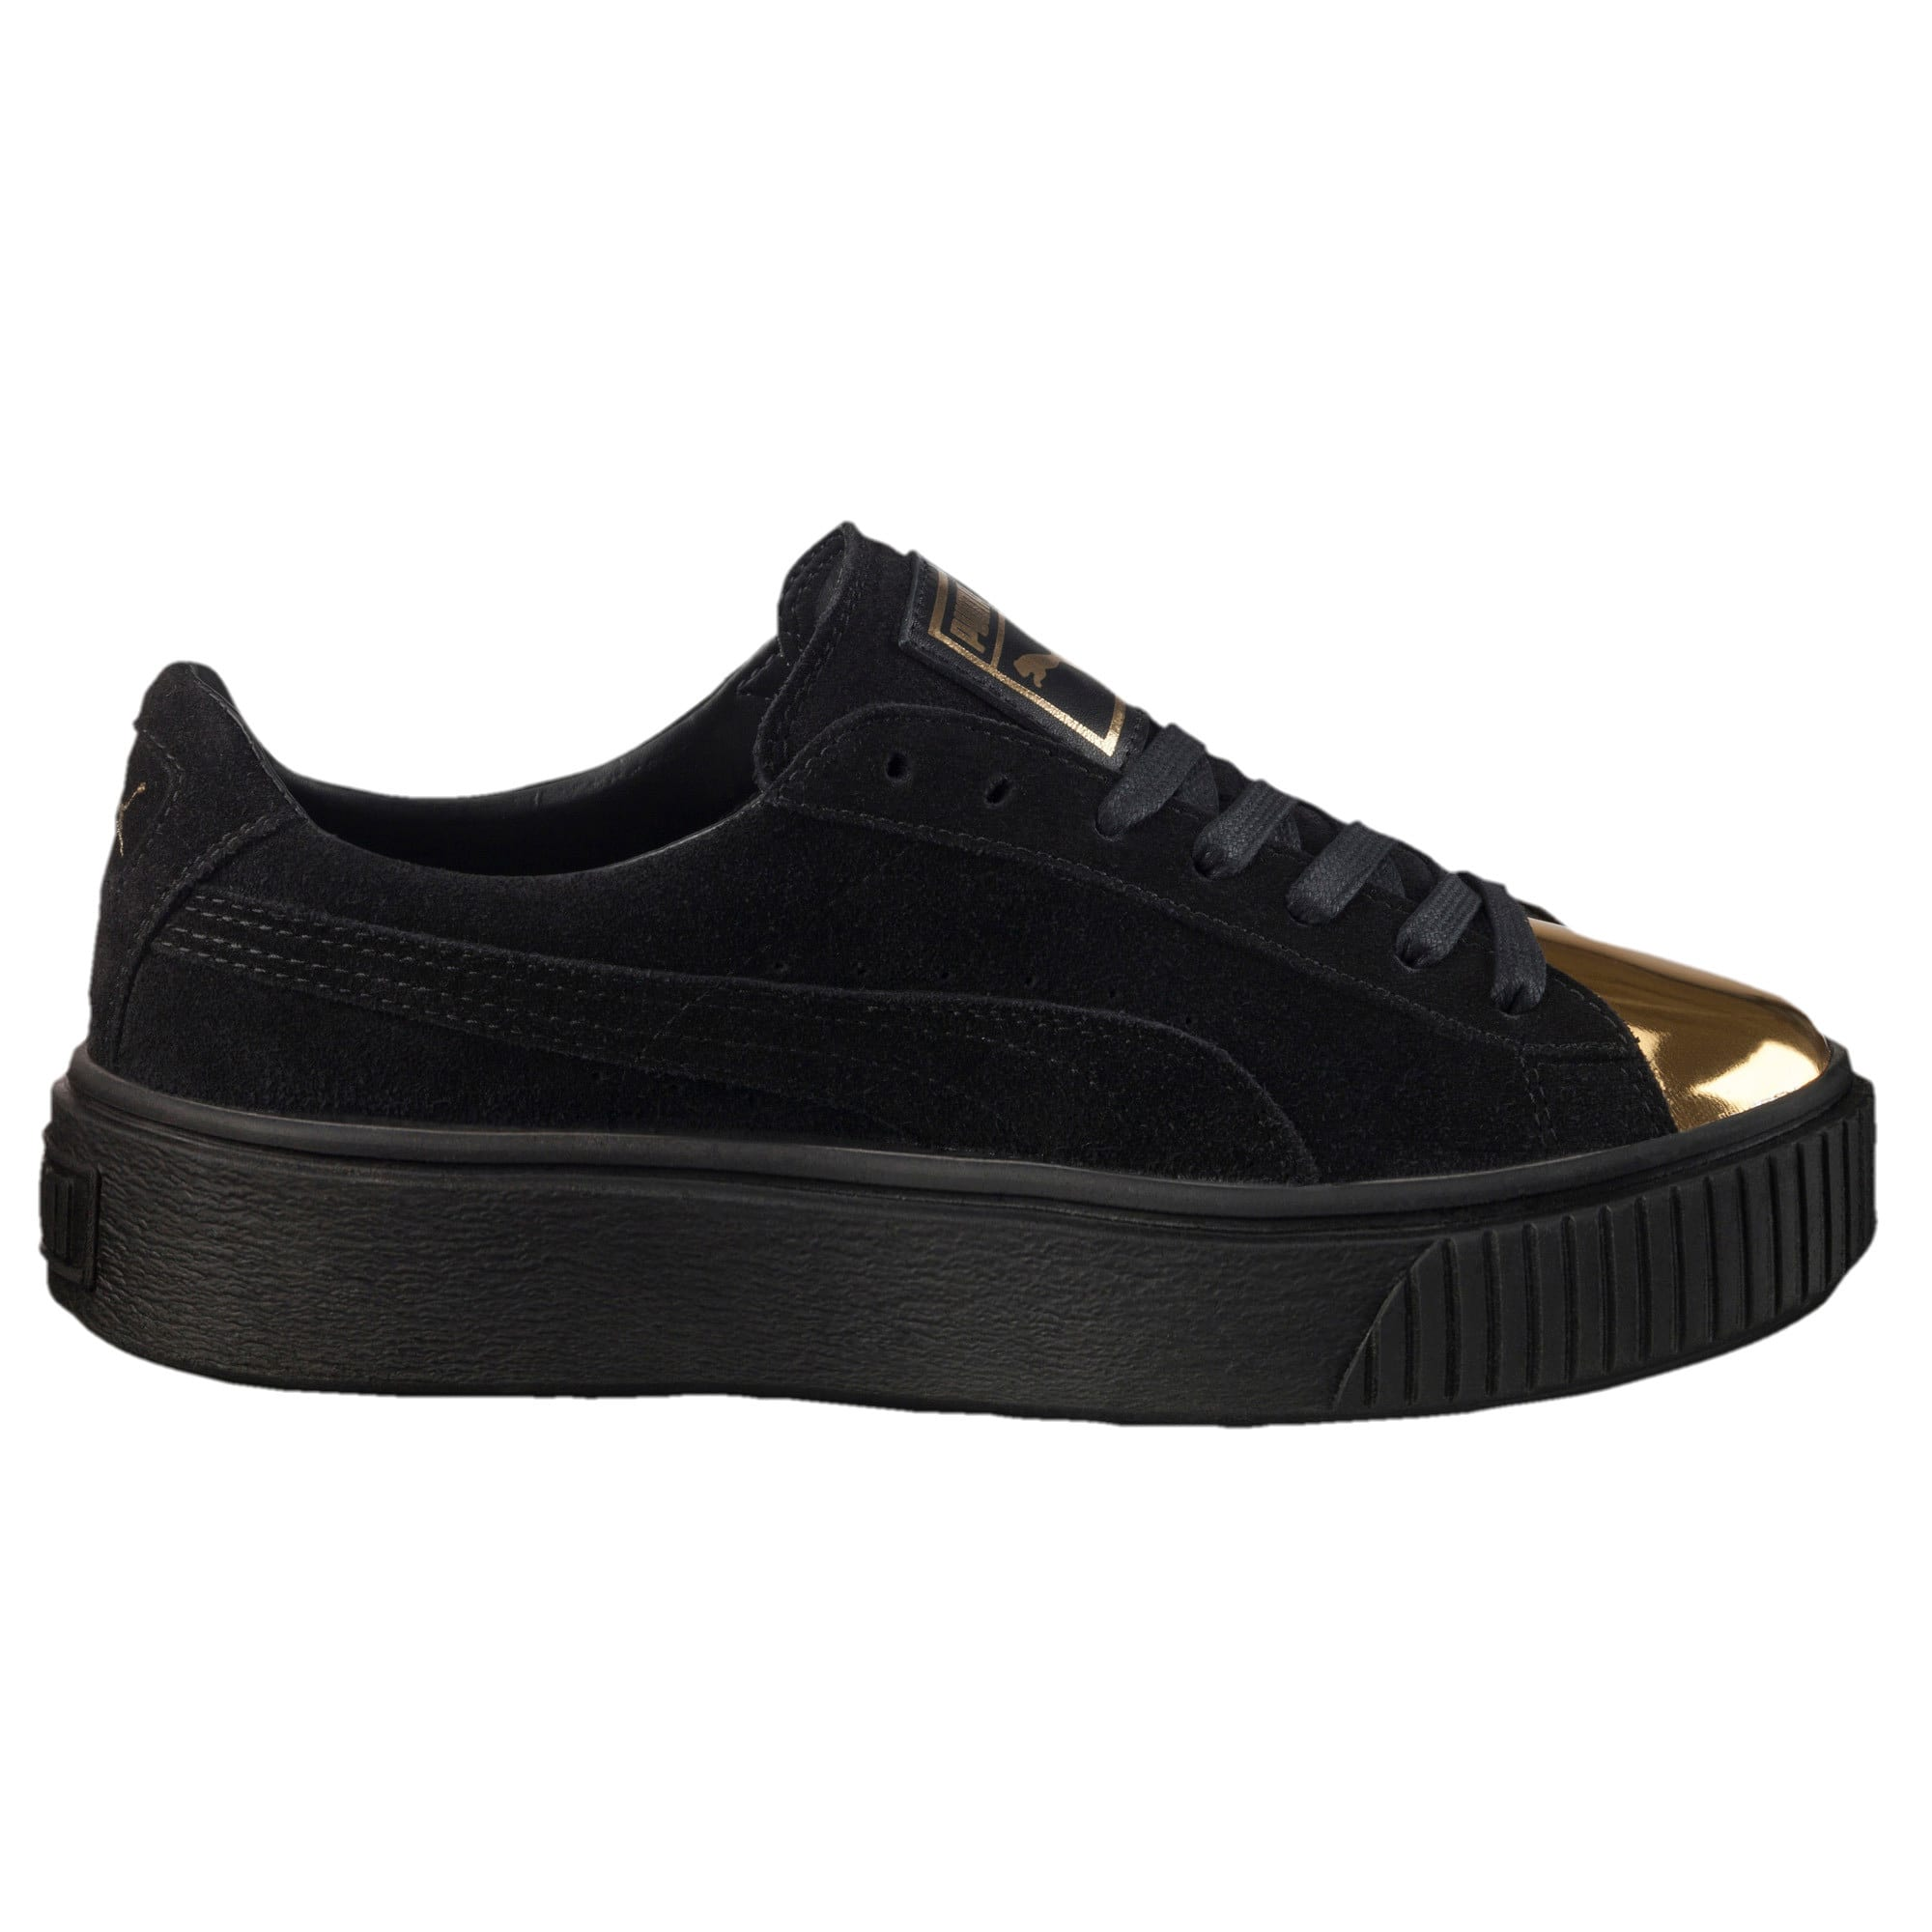 Thumbnail 4 of Suede Platform GOLD Women's Trainers, Gold-Puma Black-Puma Black, medium-IND